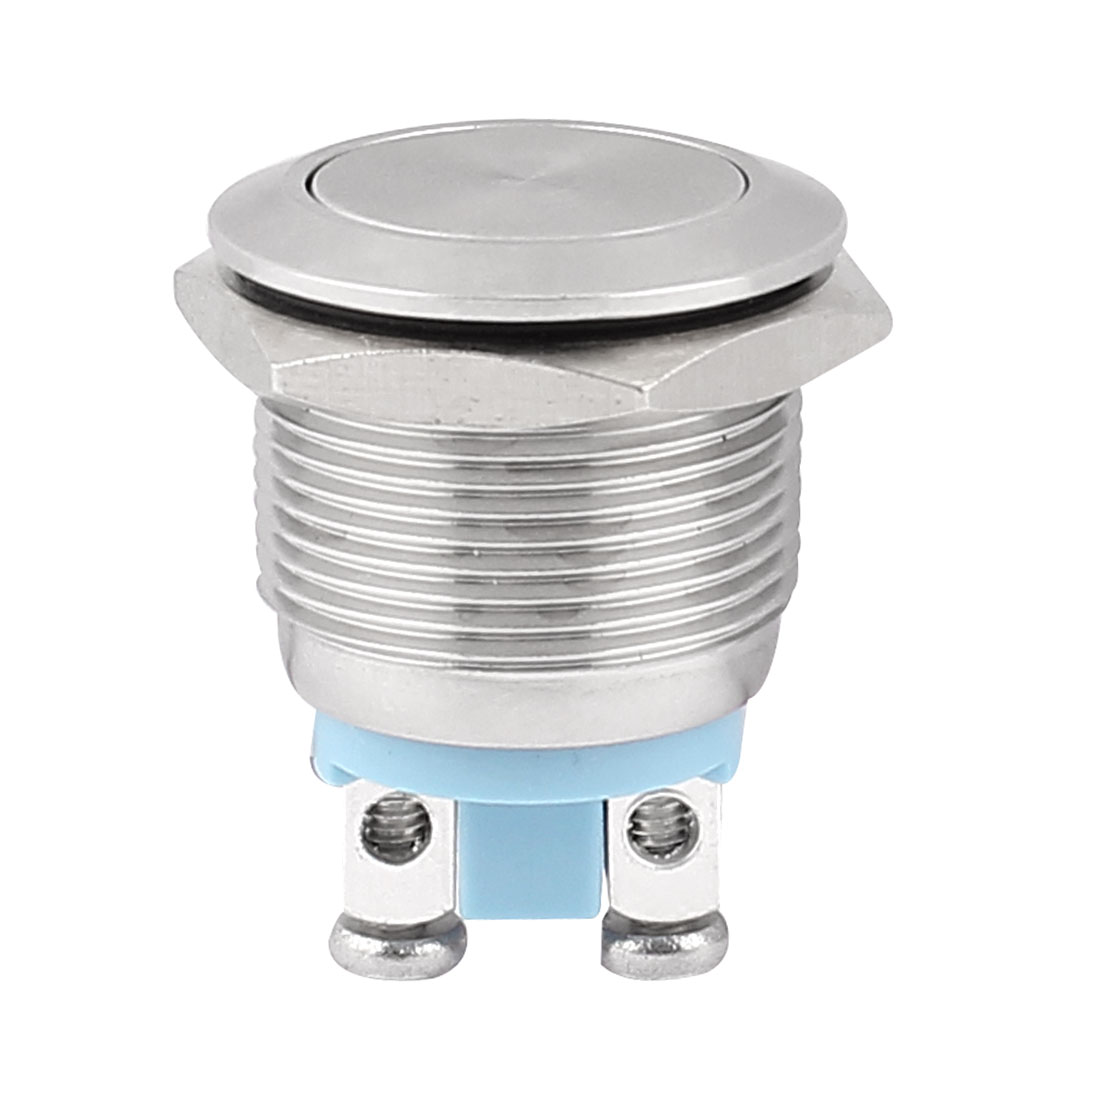 19mm Mounted Thread SPST Flat Head Momentary Push Button Switch